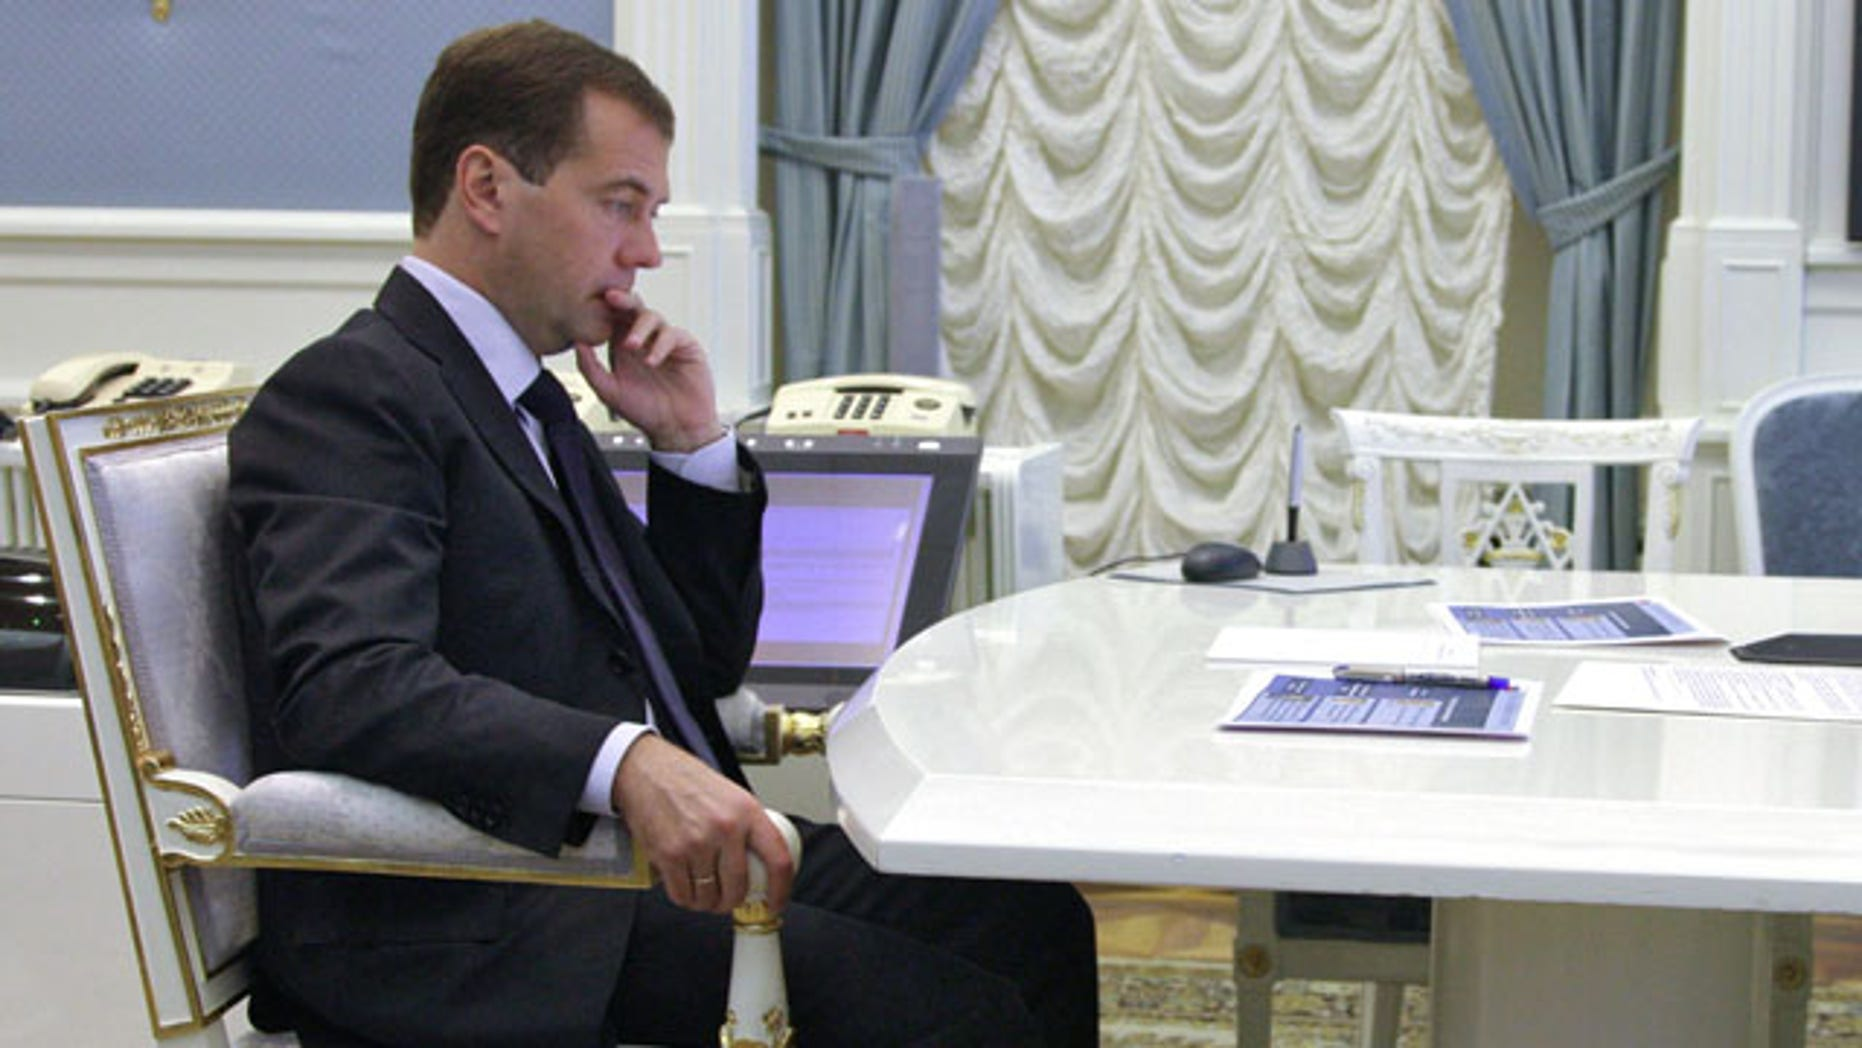 Sept. 9: Russian President Dmitry Medvedev takes part in a conference call in the Kremlin in Moscow.